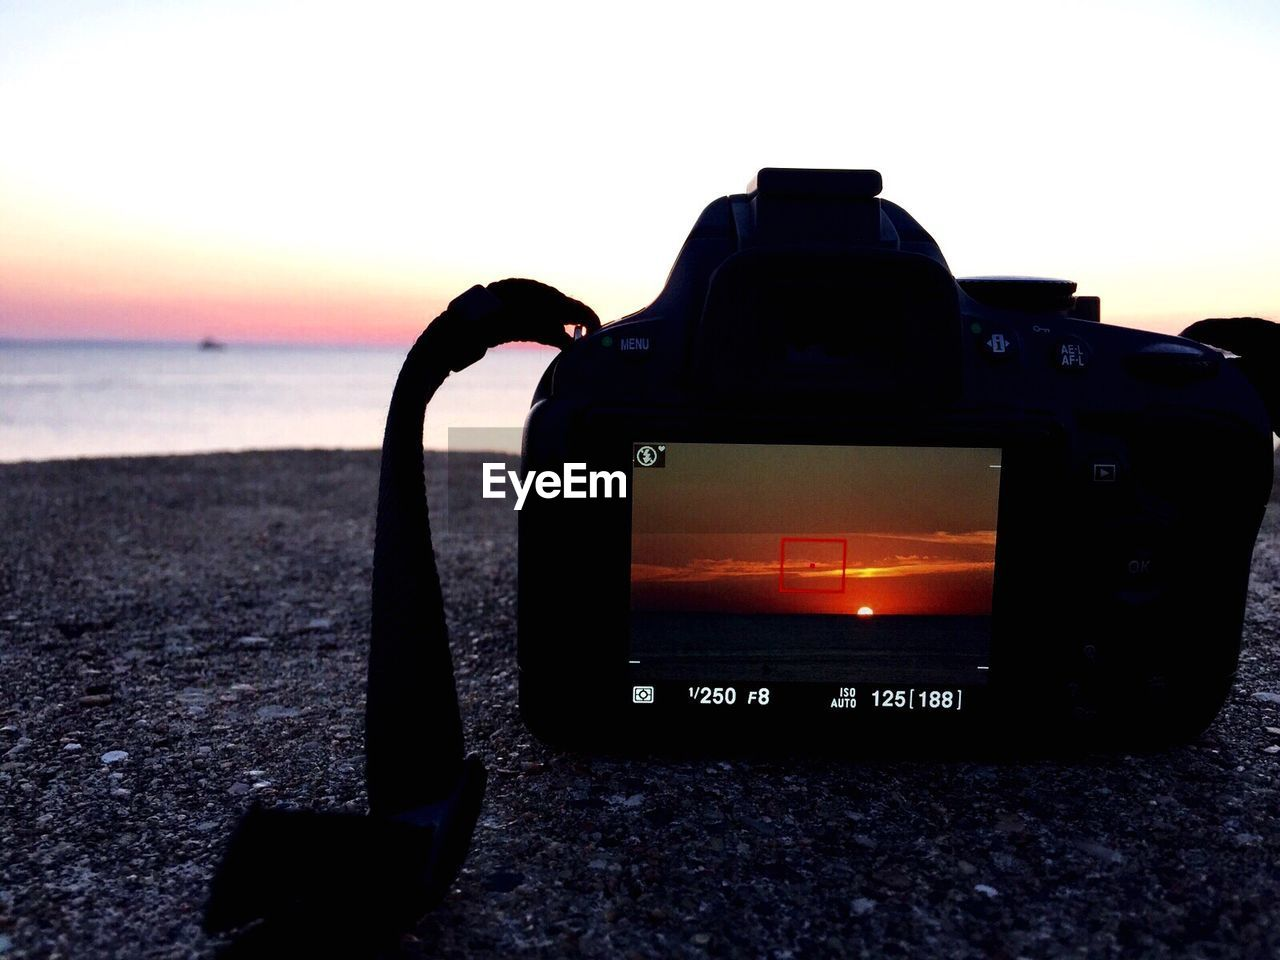 sea, beach, silhouette, no people, photography themes, sunset, technology, horizon over water, sky, camera - photographic equipment, communication, outdoors, water, close-up, wireless technology, beauty in nature, nature, digital single-lens reflex camera, day